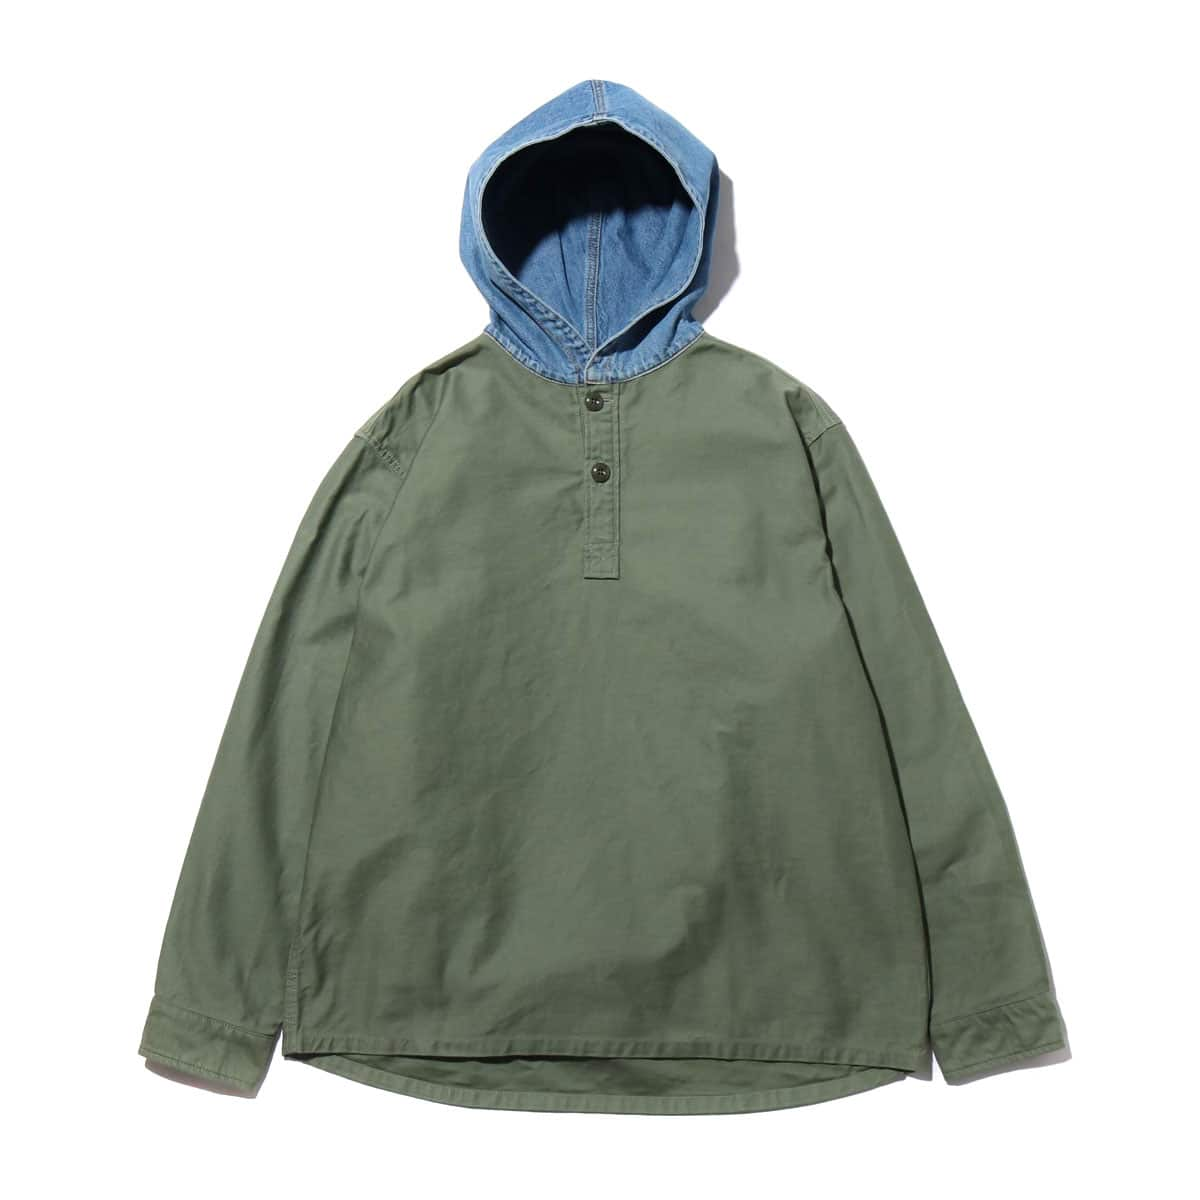 ATMOS LAB PULLOVER HOODED SHIRT OLIVE 19FA-I_photo_large